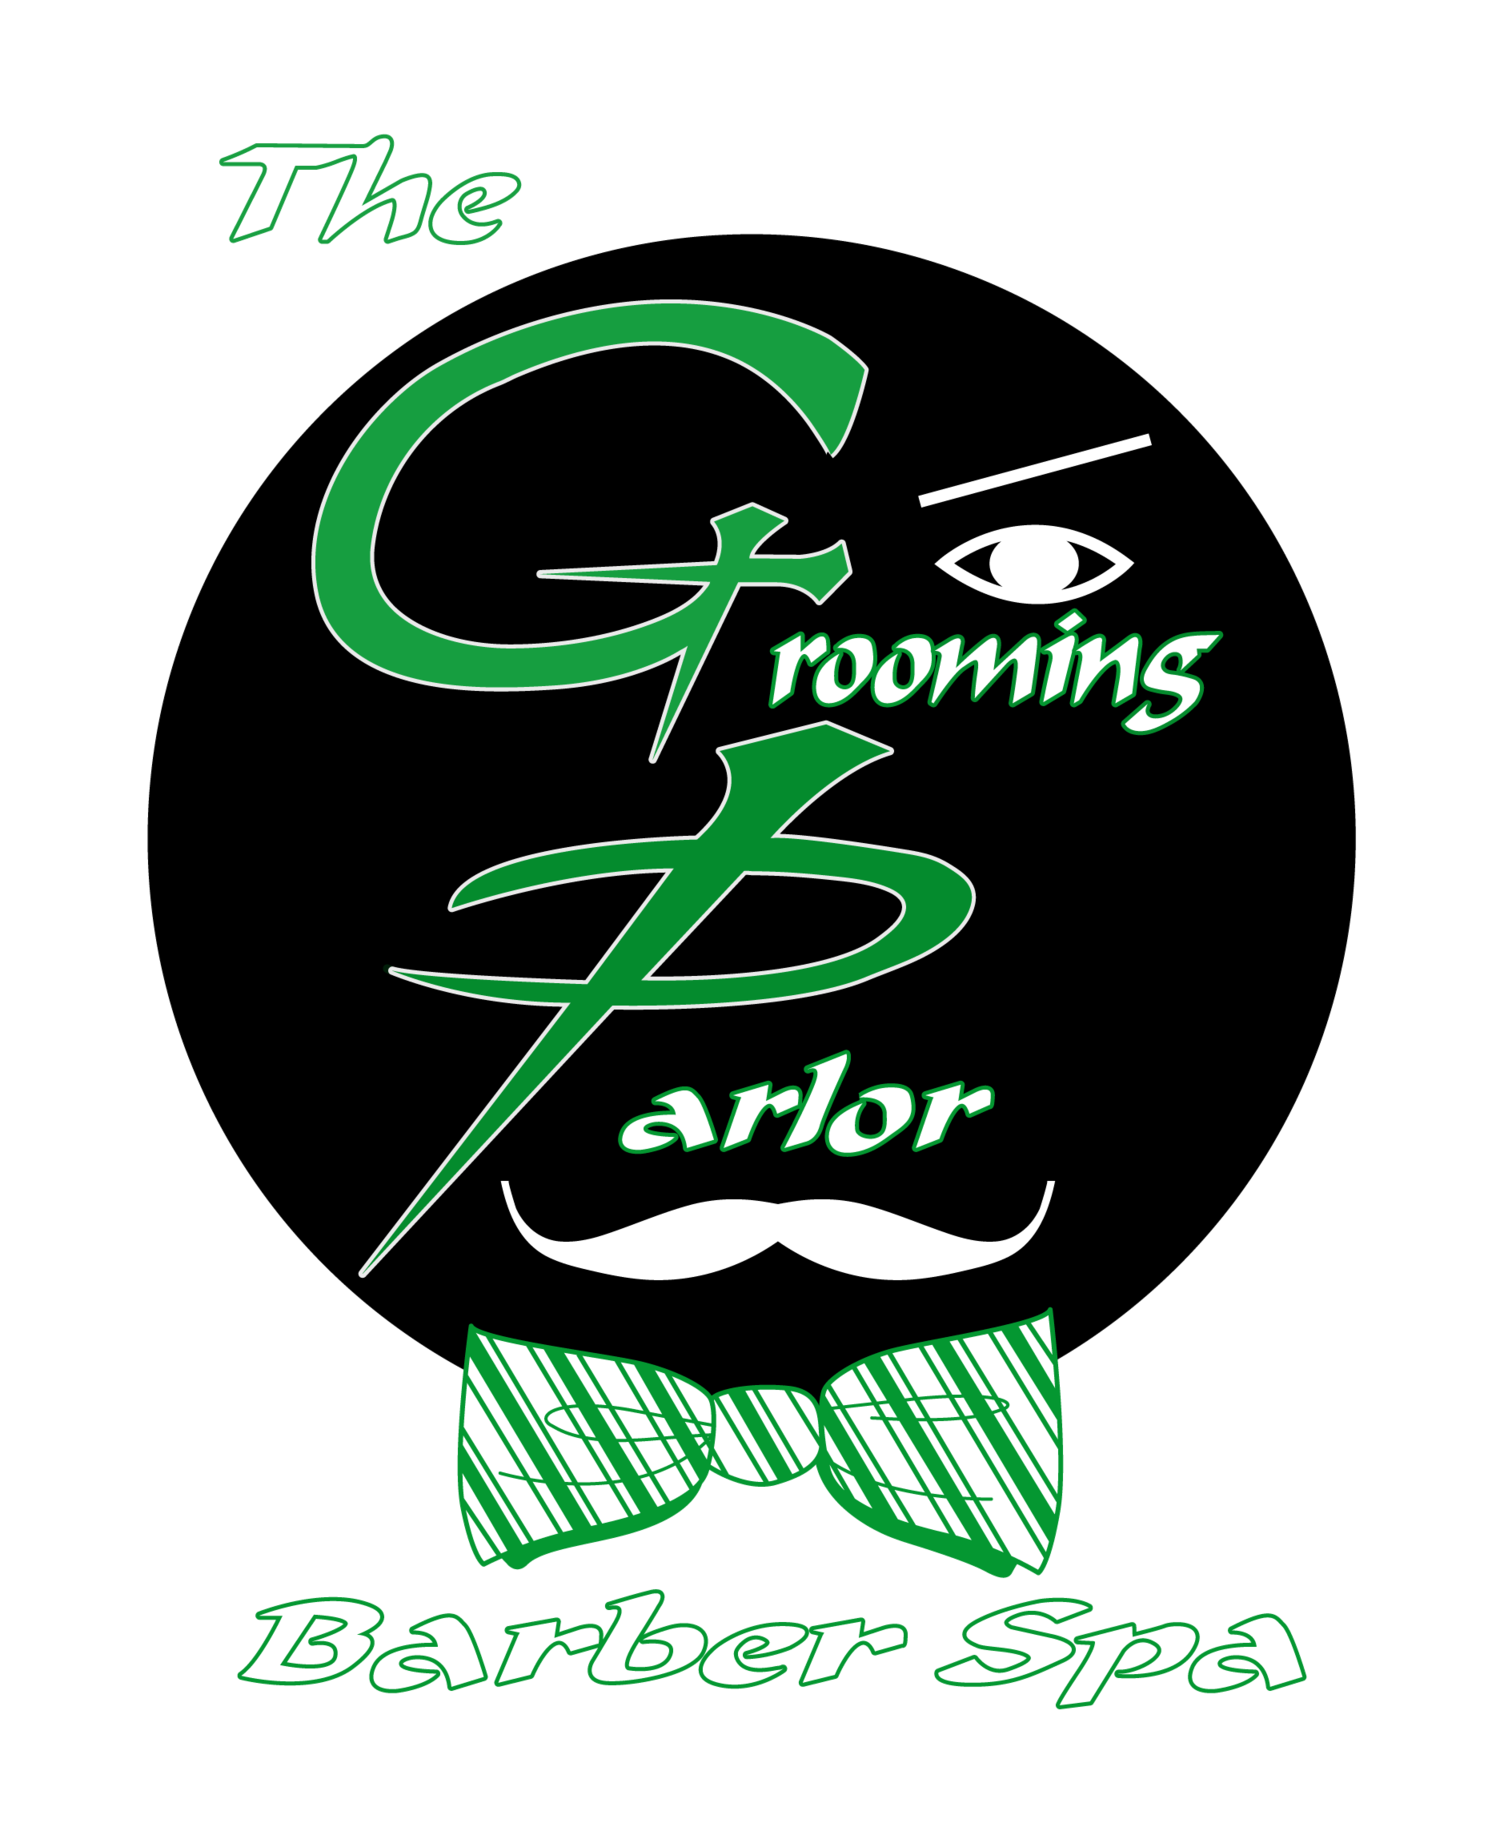 The Grooming Parlor Barber Spa